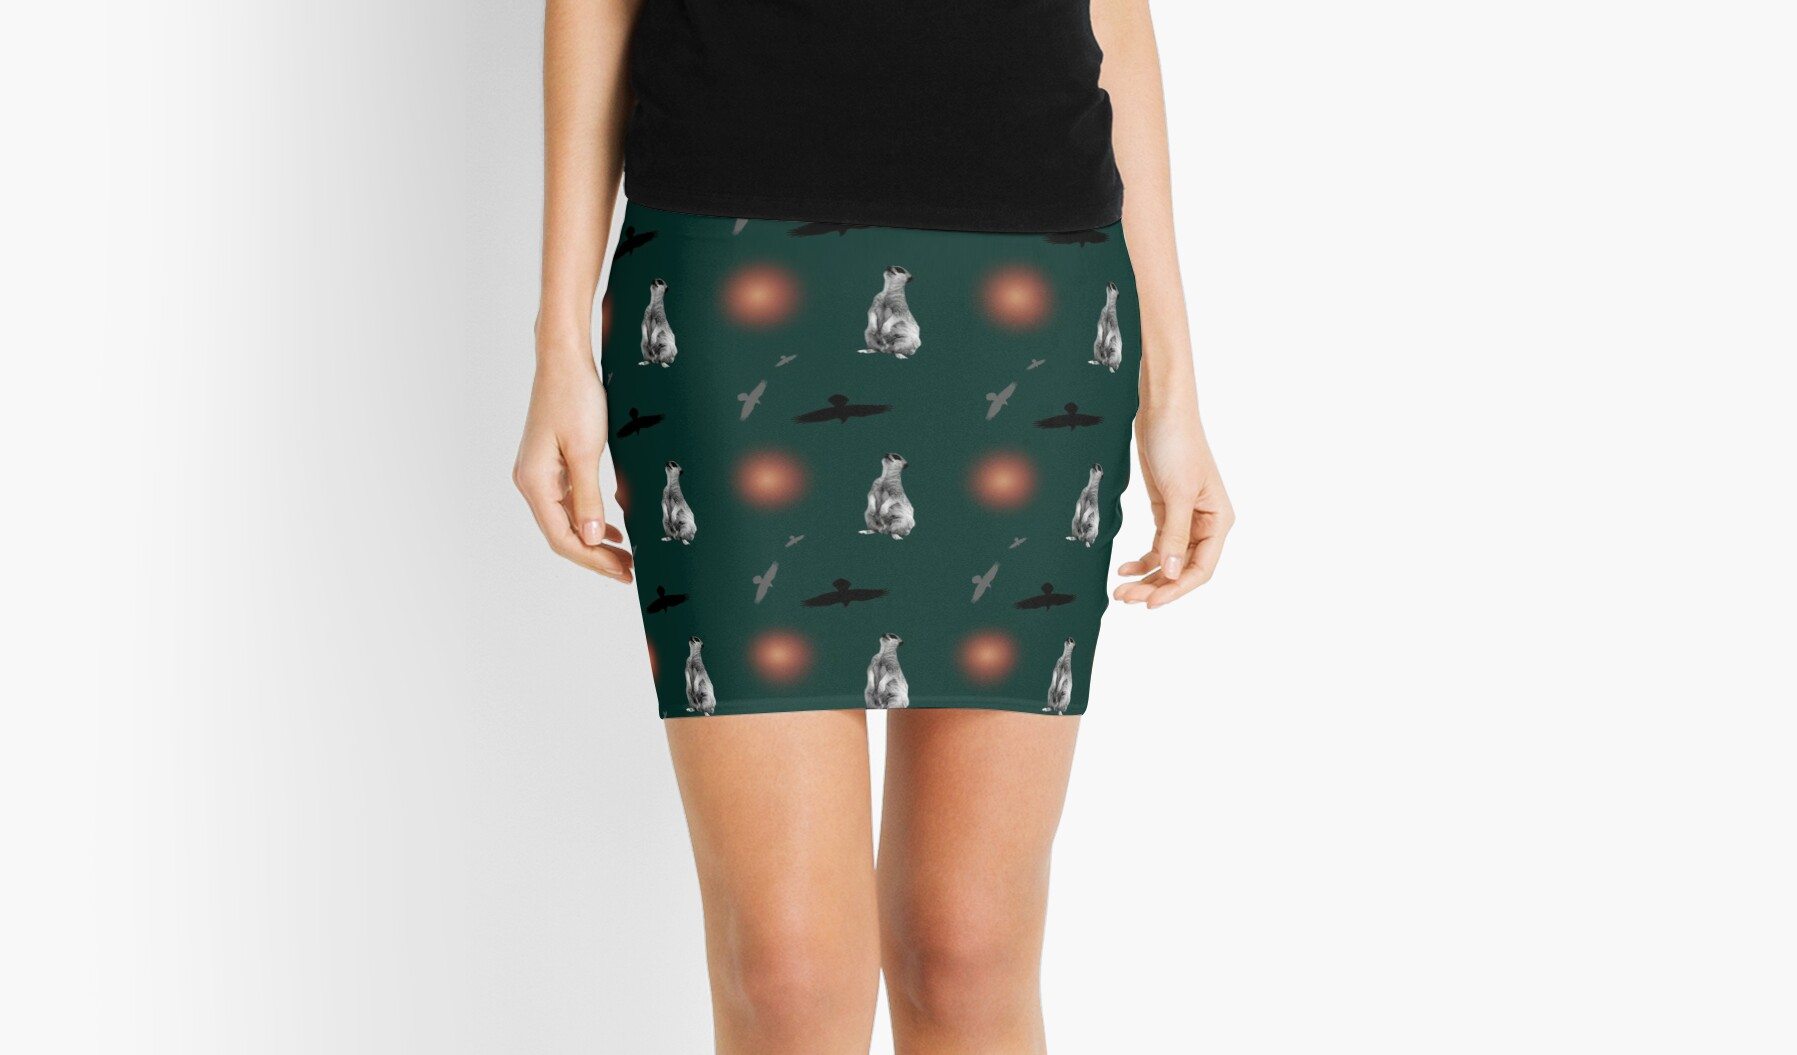 Meerkat, birds, and suns pattern on green by chihuahuashower